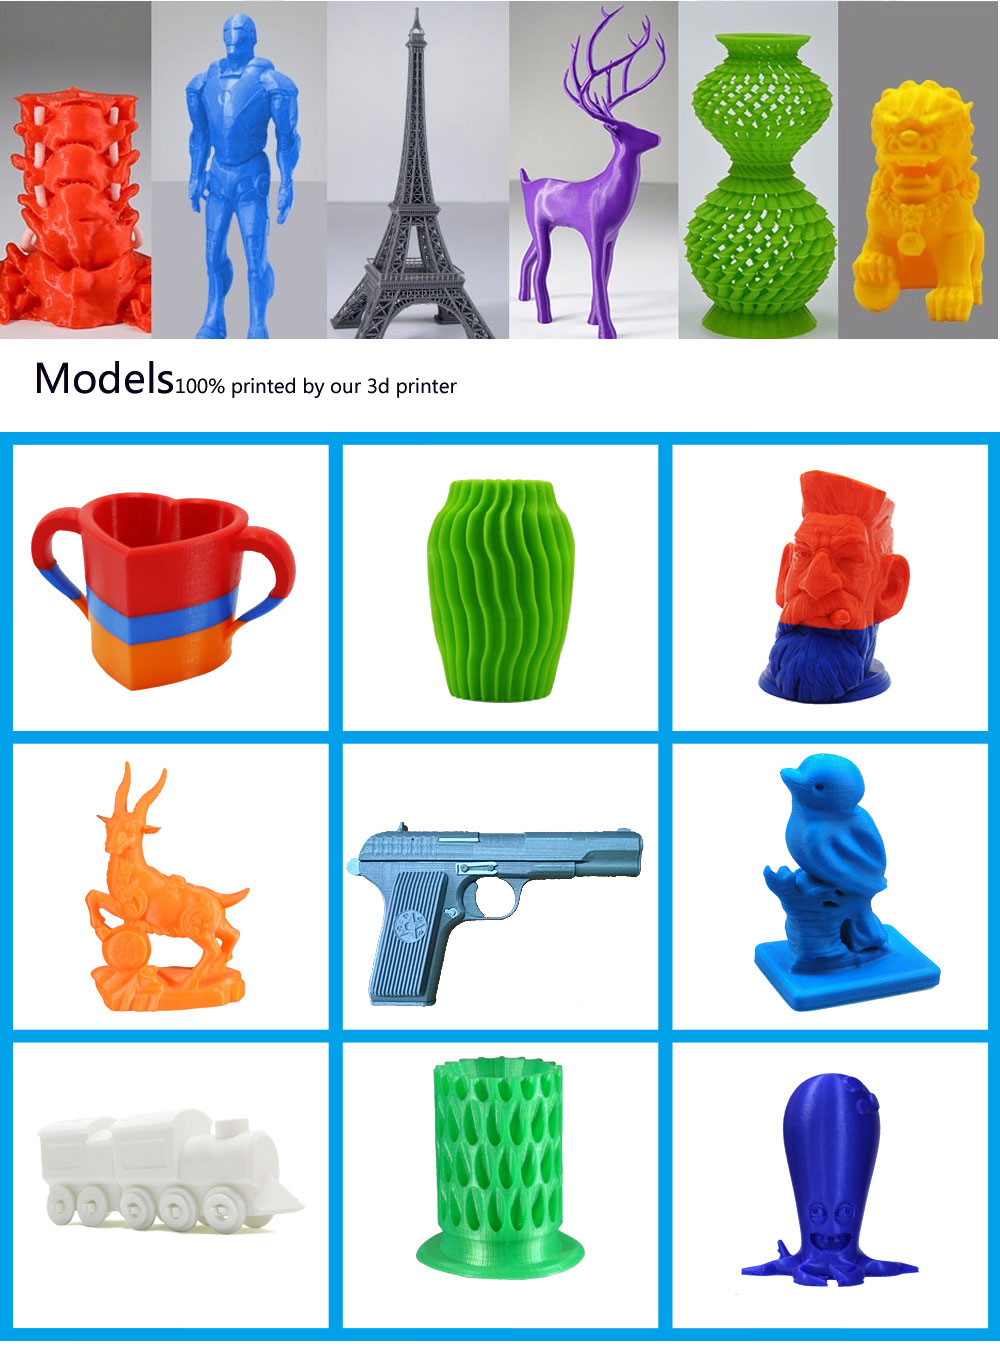 models by our 3D printer